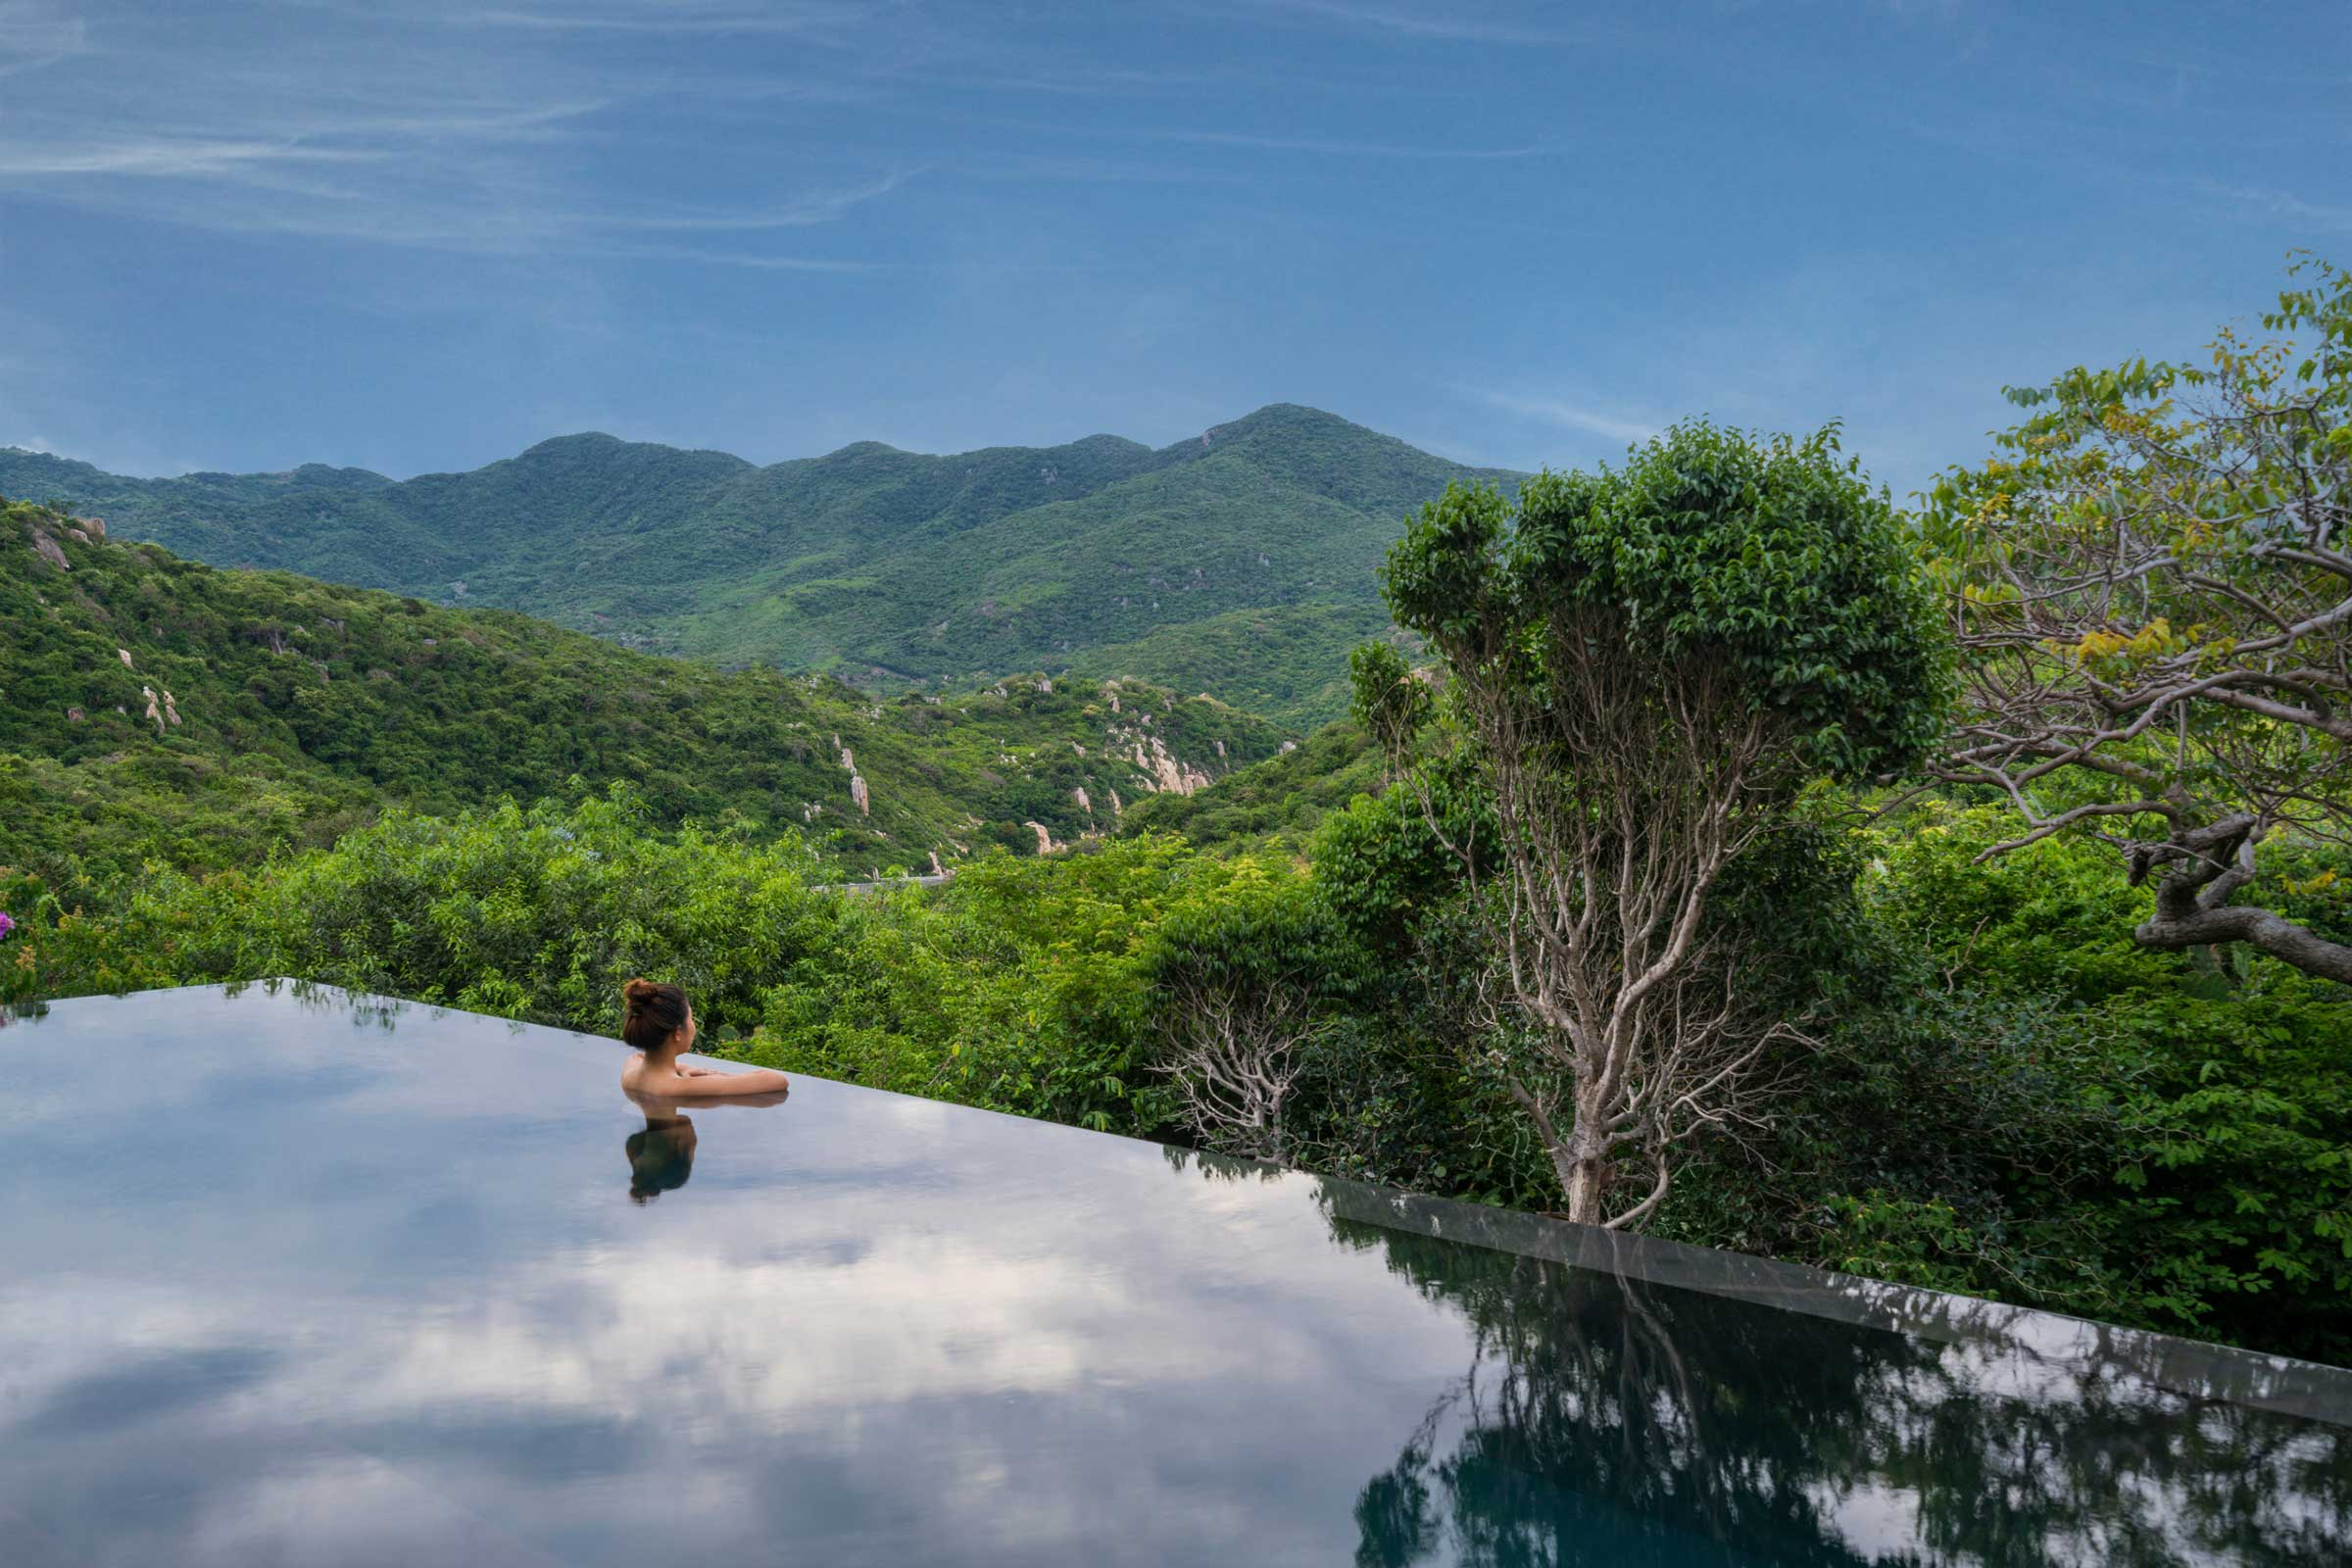 Amanoi,-Vietnam---View-to-the-Mountain-from-Spa-House-Pool_High-Res_14581.jpg